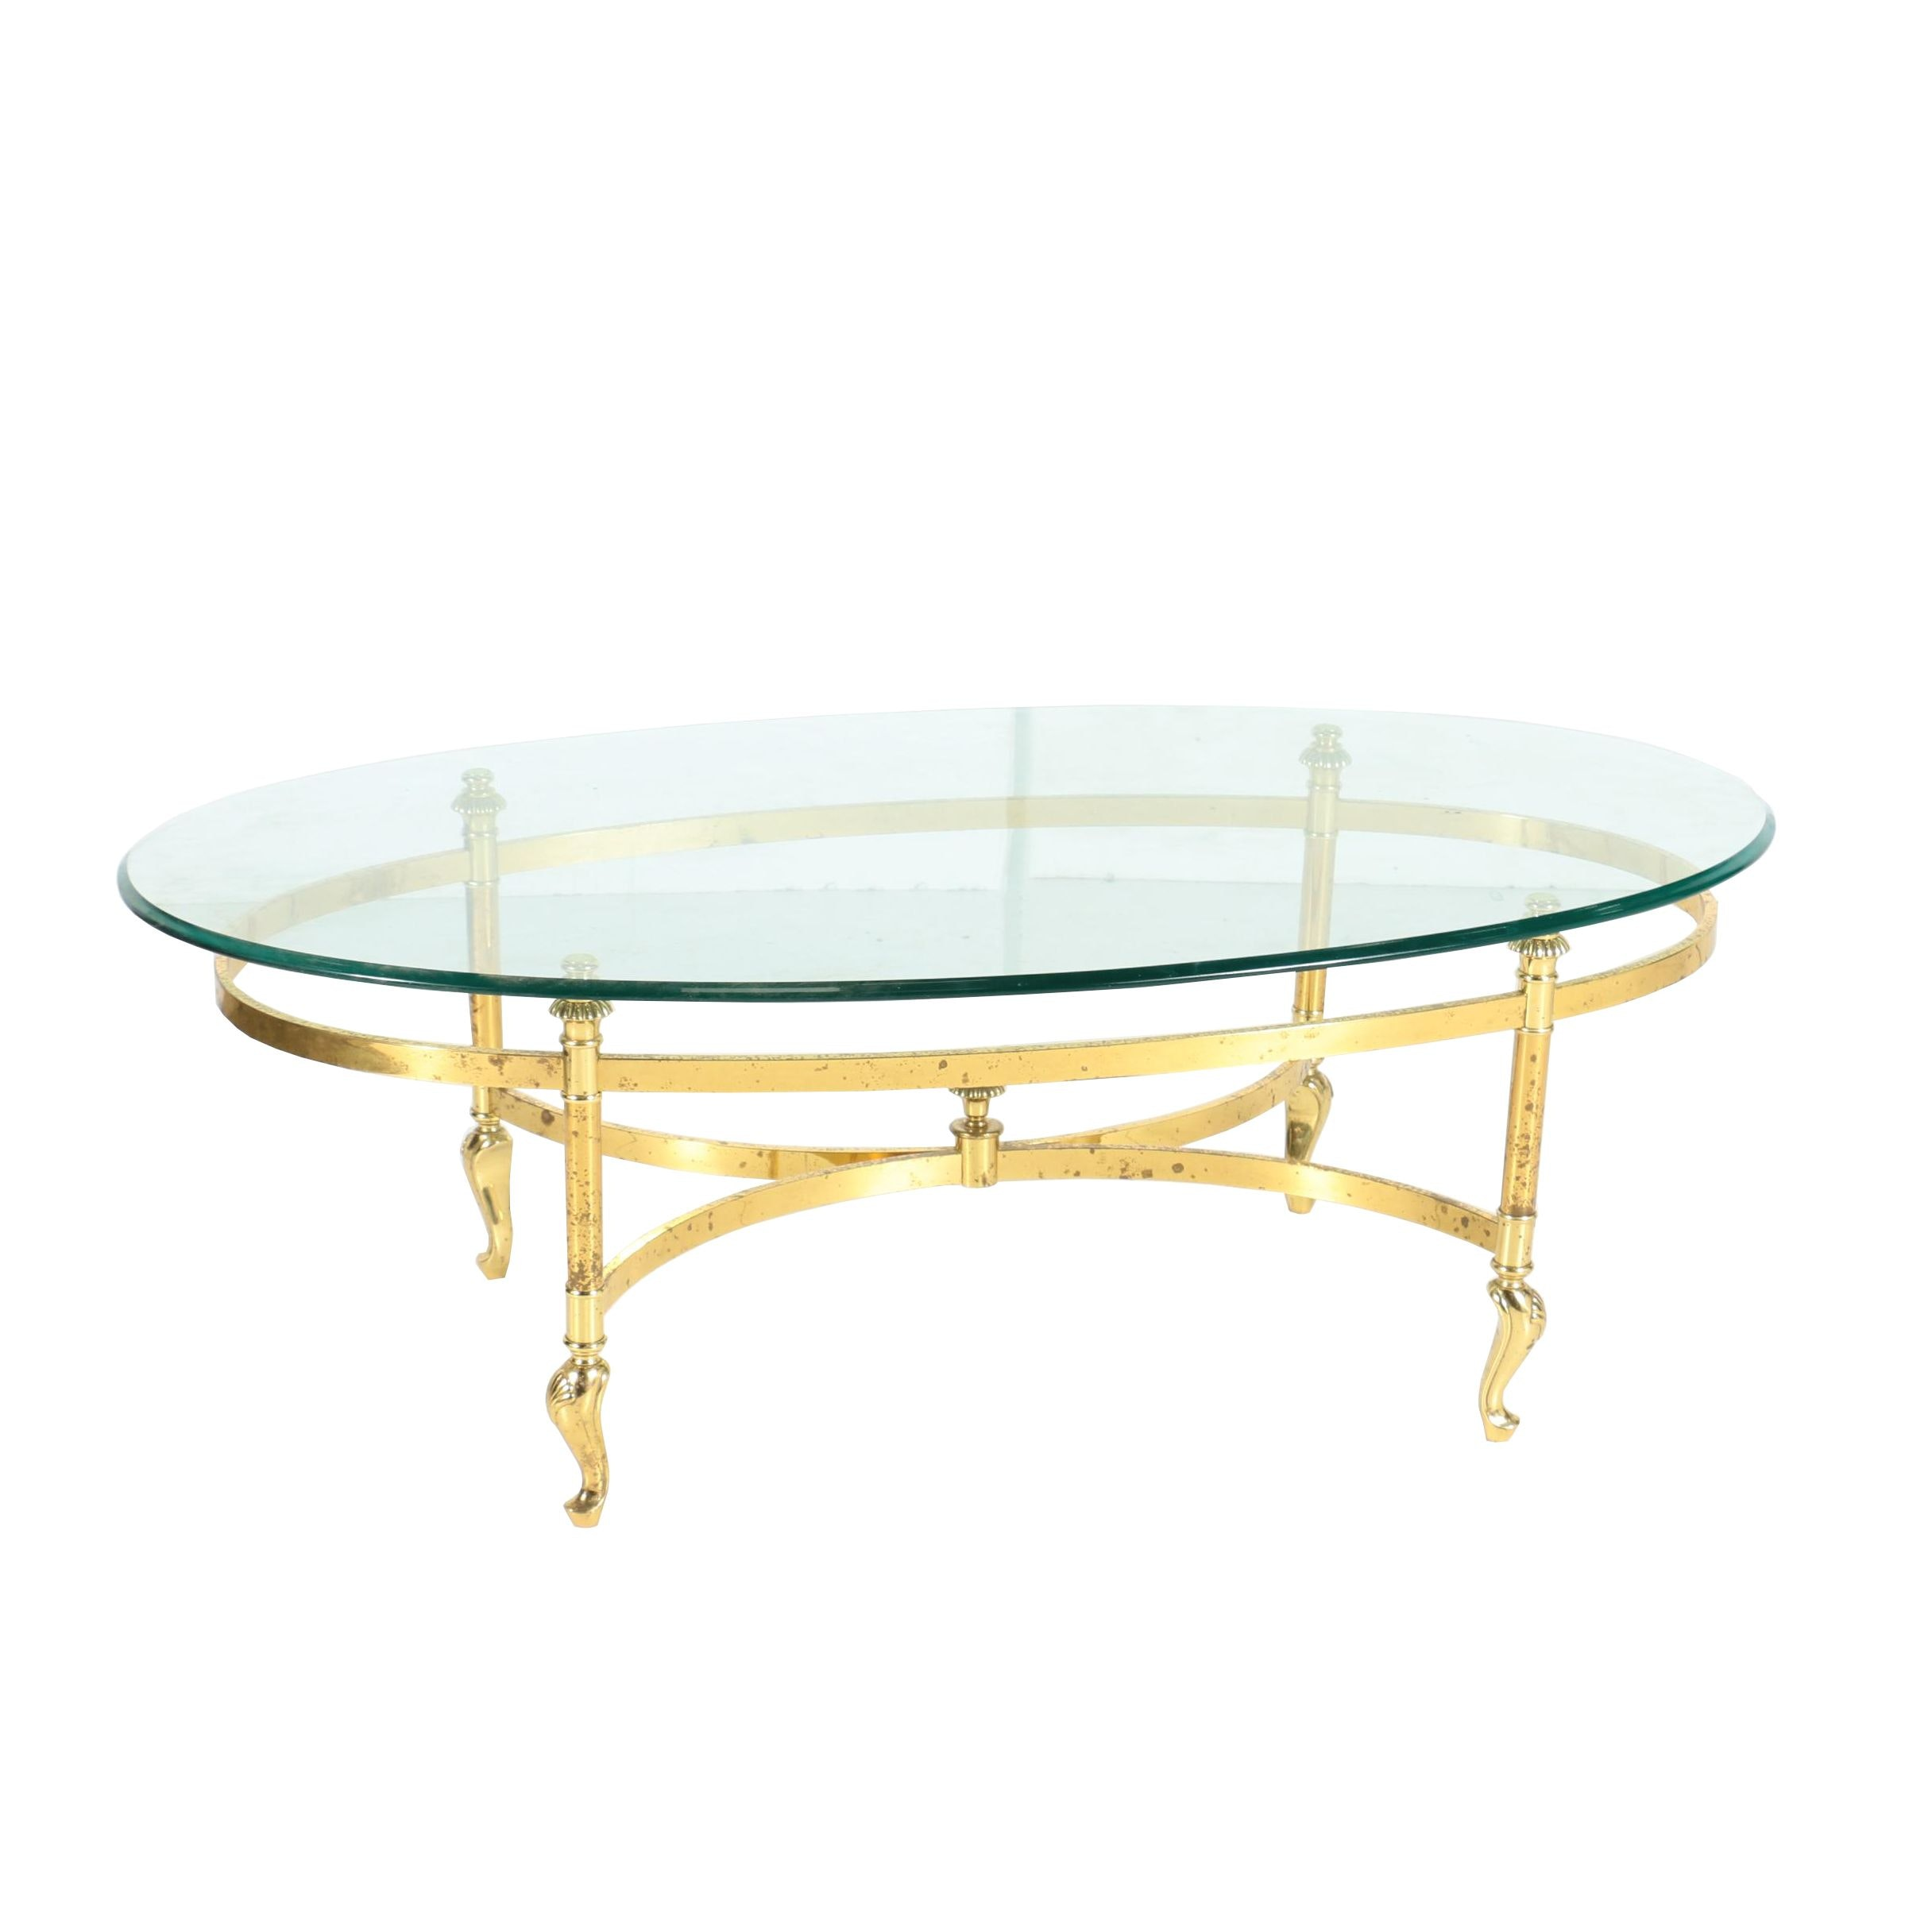 Oval Brass Coffee Table with Glass Top in the Style of La Barge, 20th Century